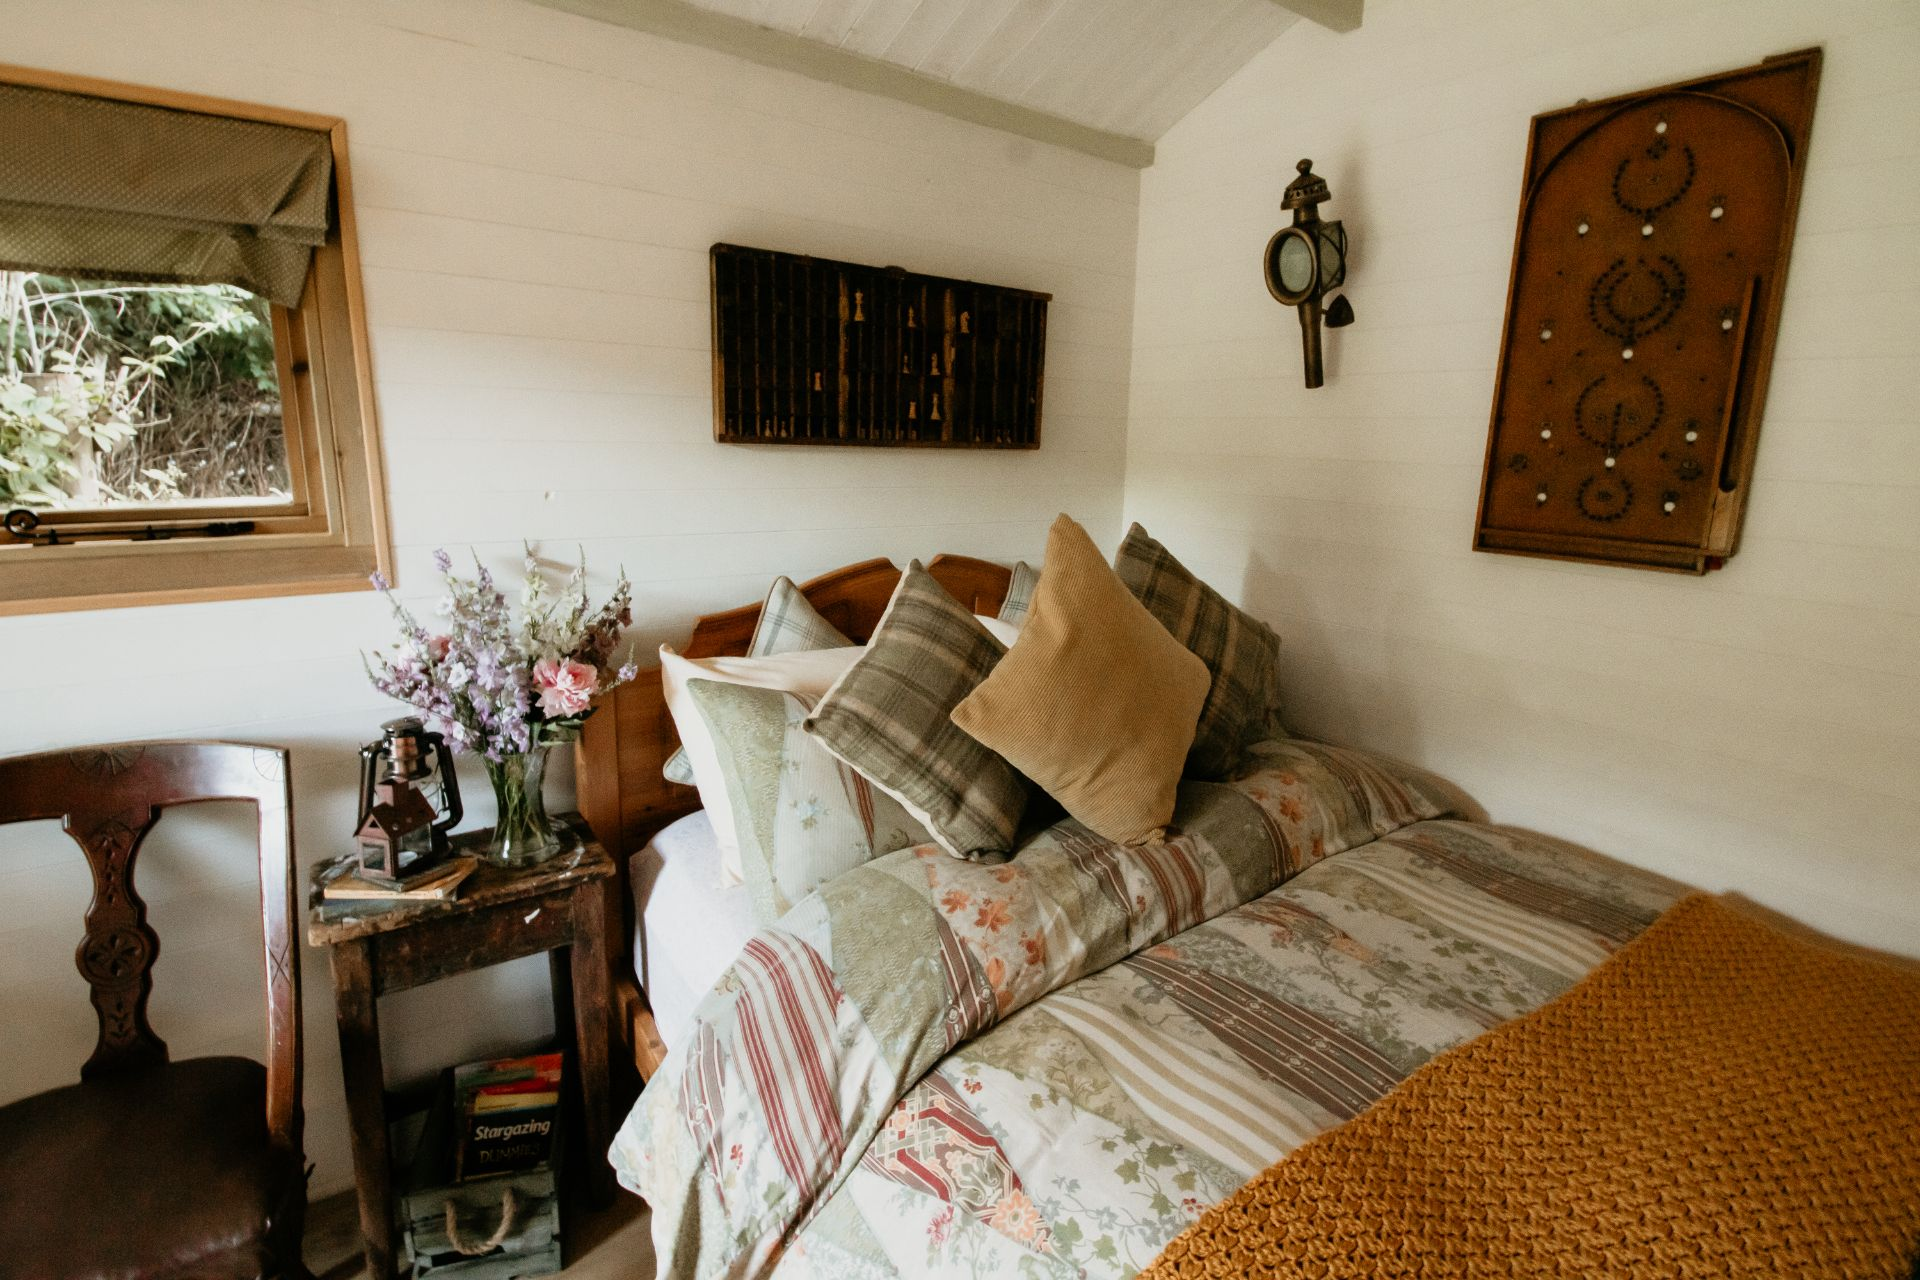 bed-covered-in-cosy-quilts-and-cushions-in-prothero-shepherds-hut-the-moon-and-i-glamping-with-hot-tub-herefordshire